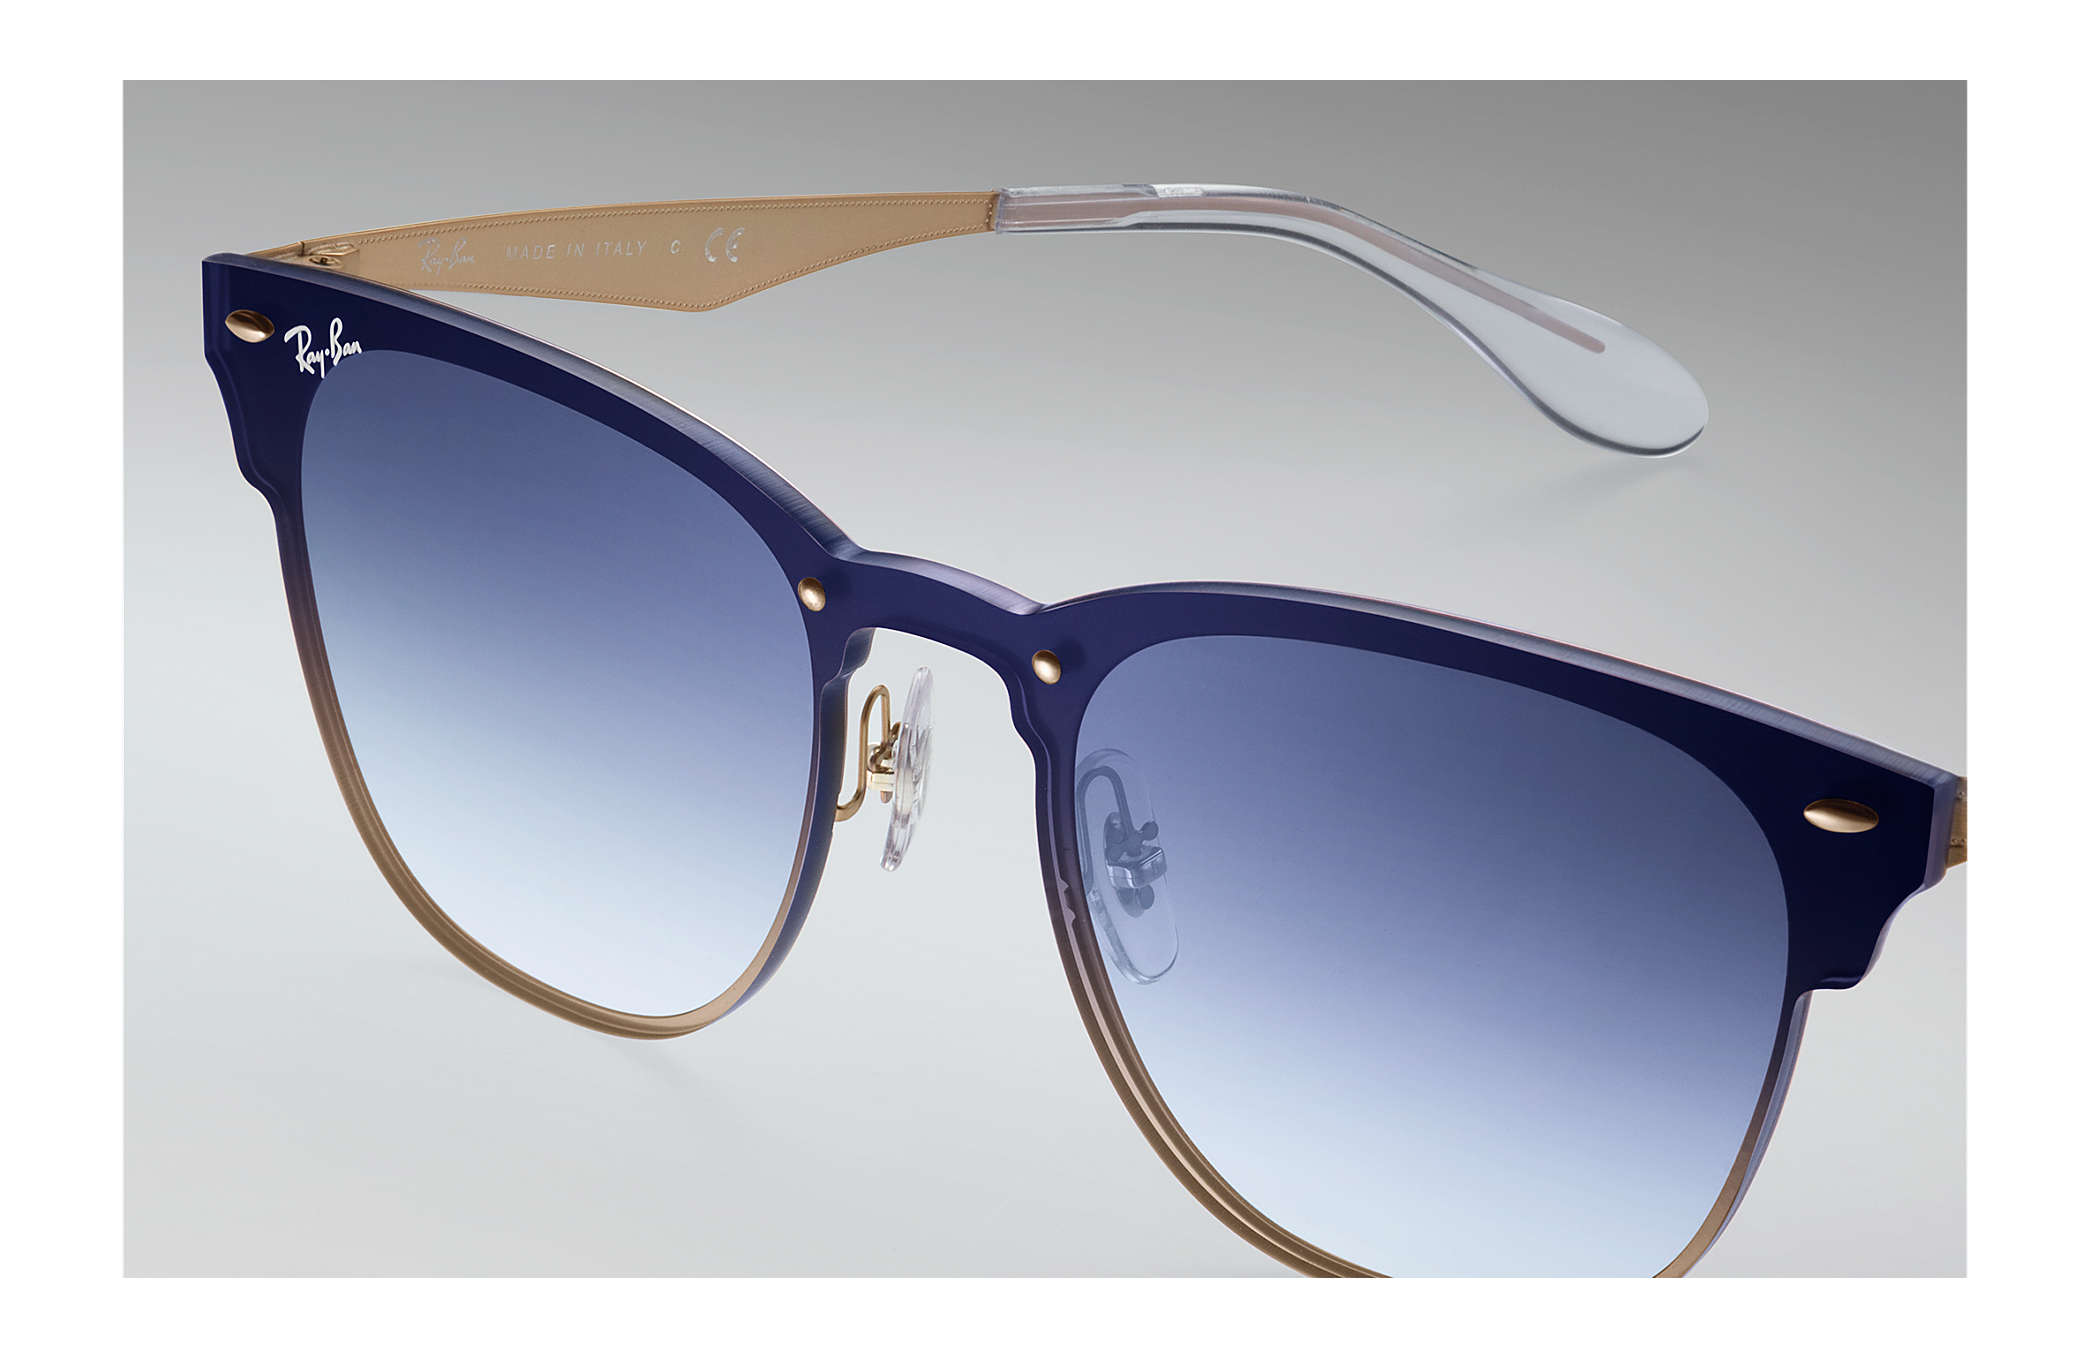 b7c921262d4 Ray-Ban Blaze Clubmaster RB3576N Gold - Steel - Blue Lenses ...